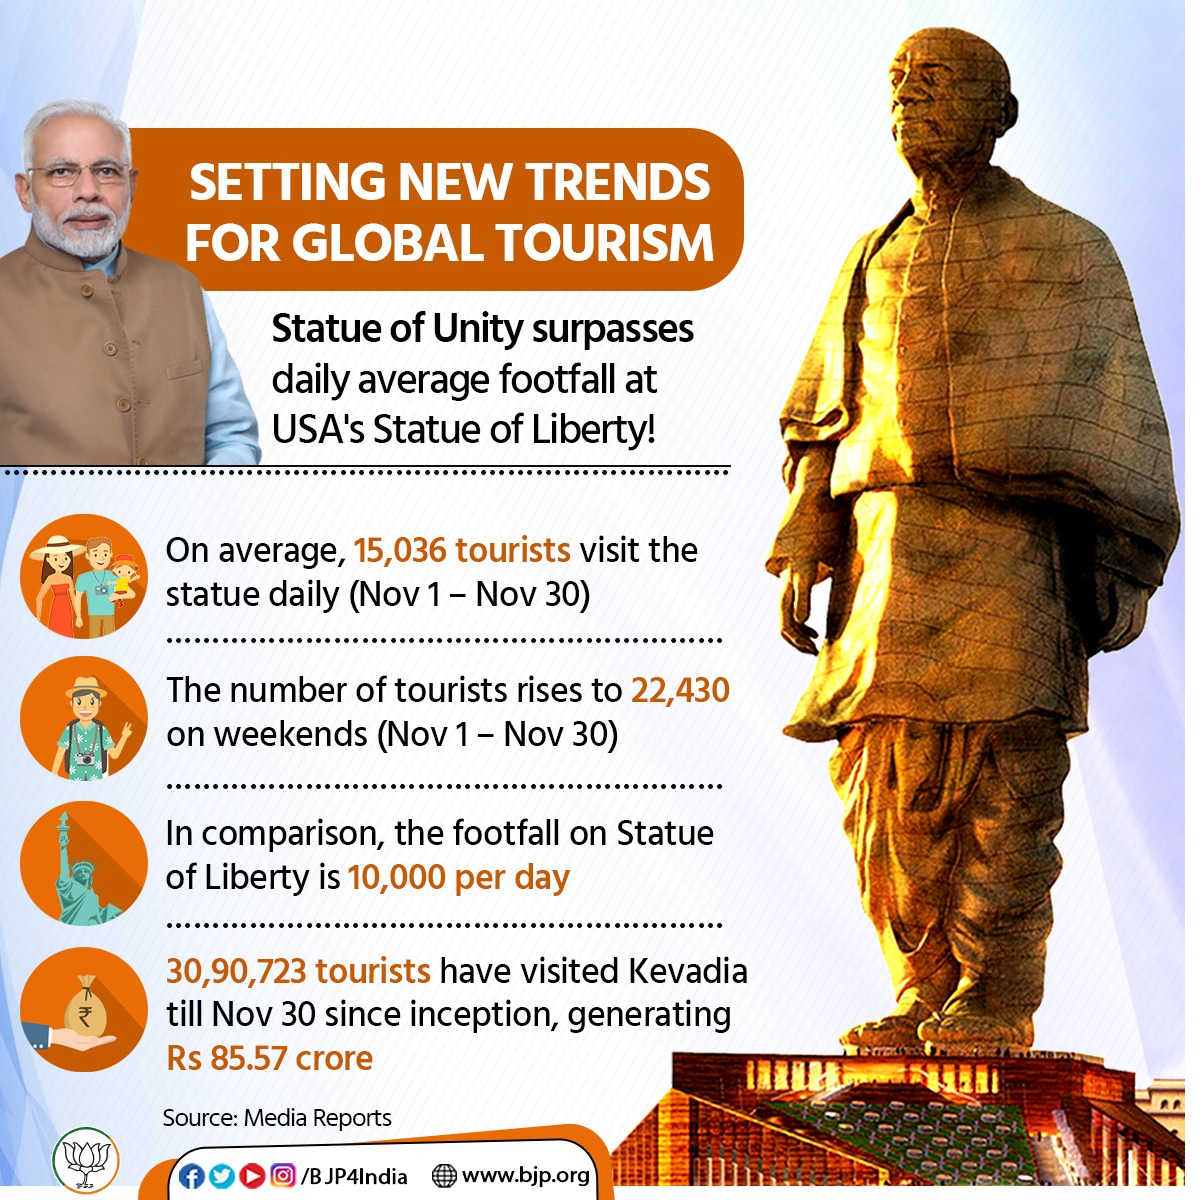 The Statue of Unity is setting global trends on tourism.Surpassing the Statue of Liberty's daily footfall, it recorded 15,036 daily visitors (avg) in Nov. The Statue of Liberty records 10,000 daily visitors (avg).The site has also generated Rs 85.57 crore since its inception.